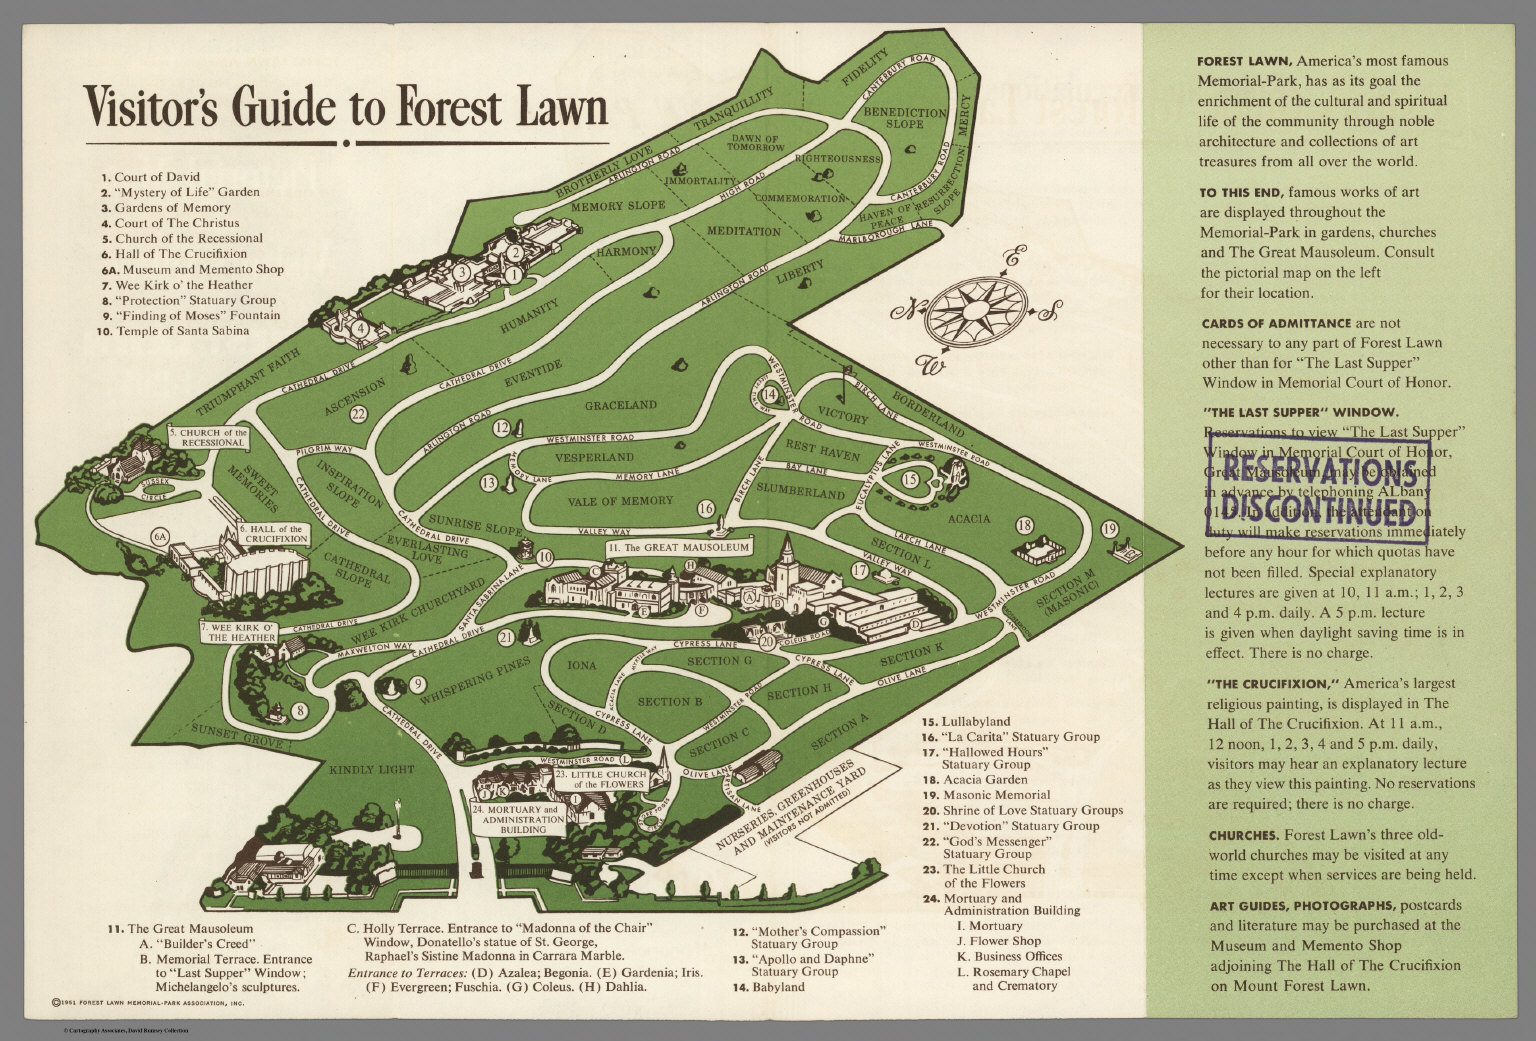 pictorial map and visitor s guide to forest lawn memorial park